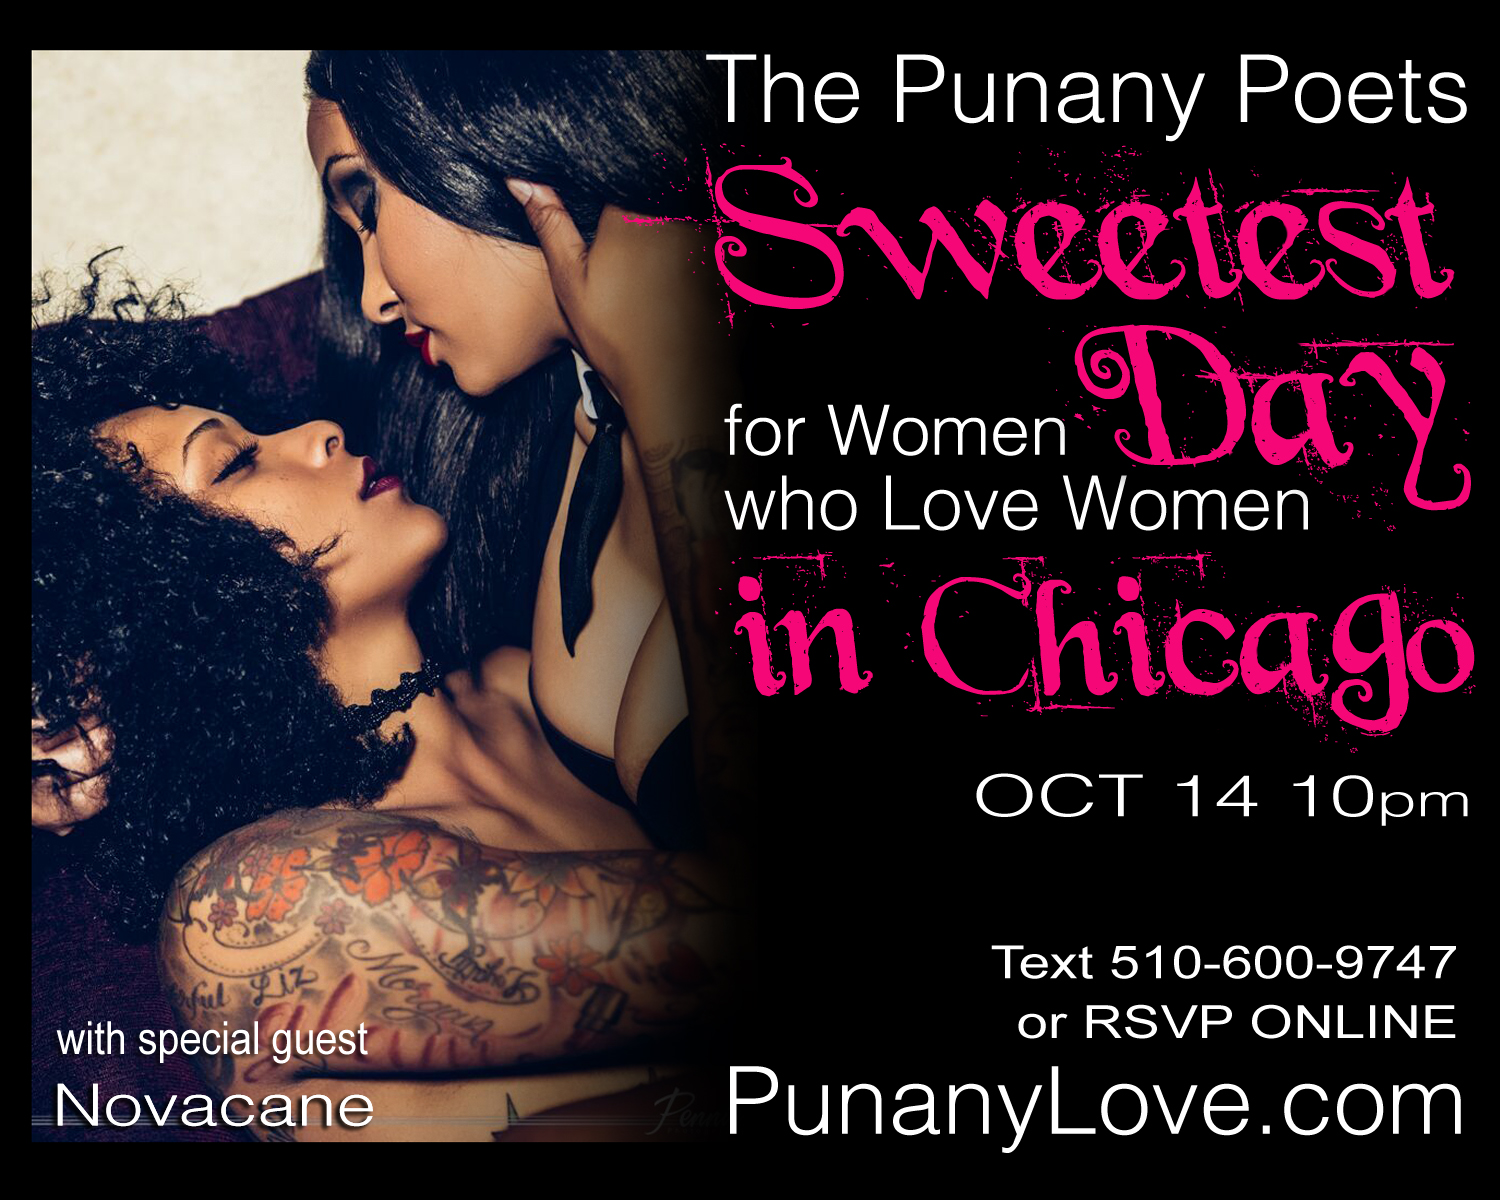 The Punany Poets Sweetest Day for Lesbians 2016